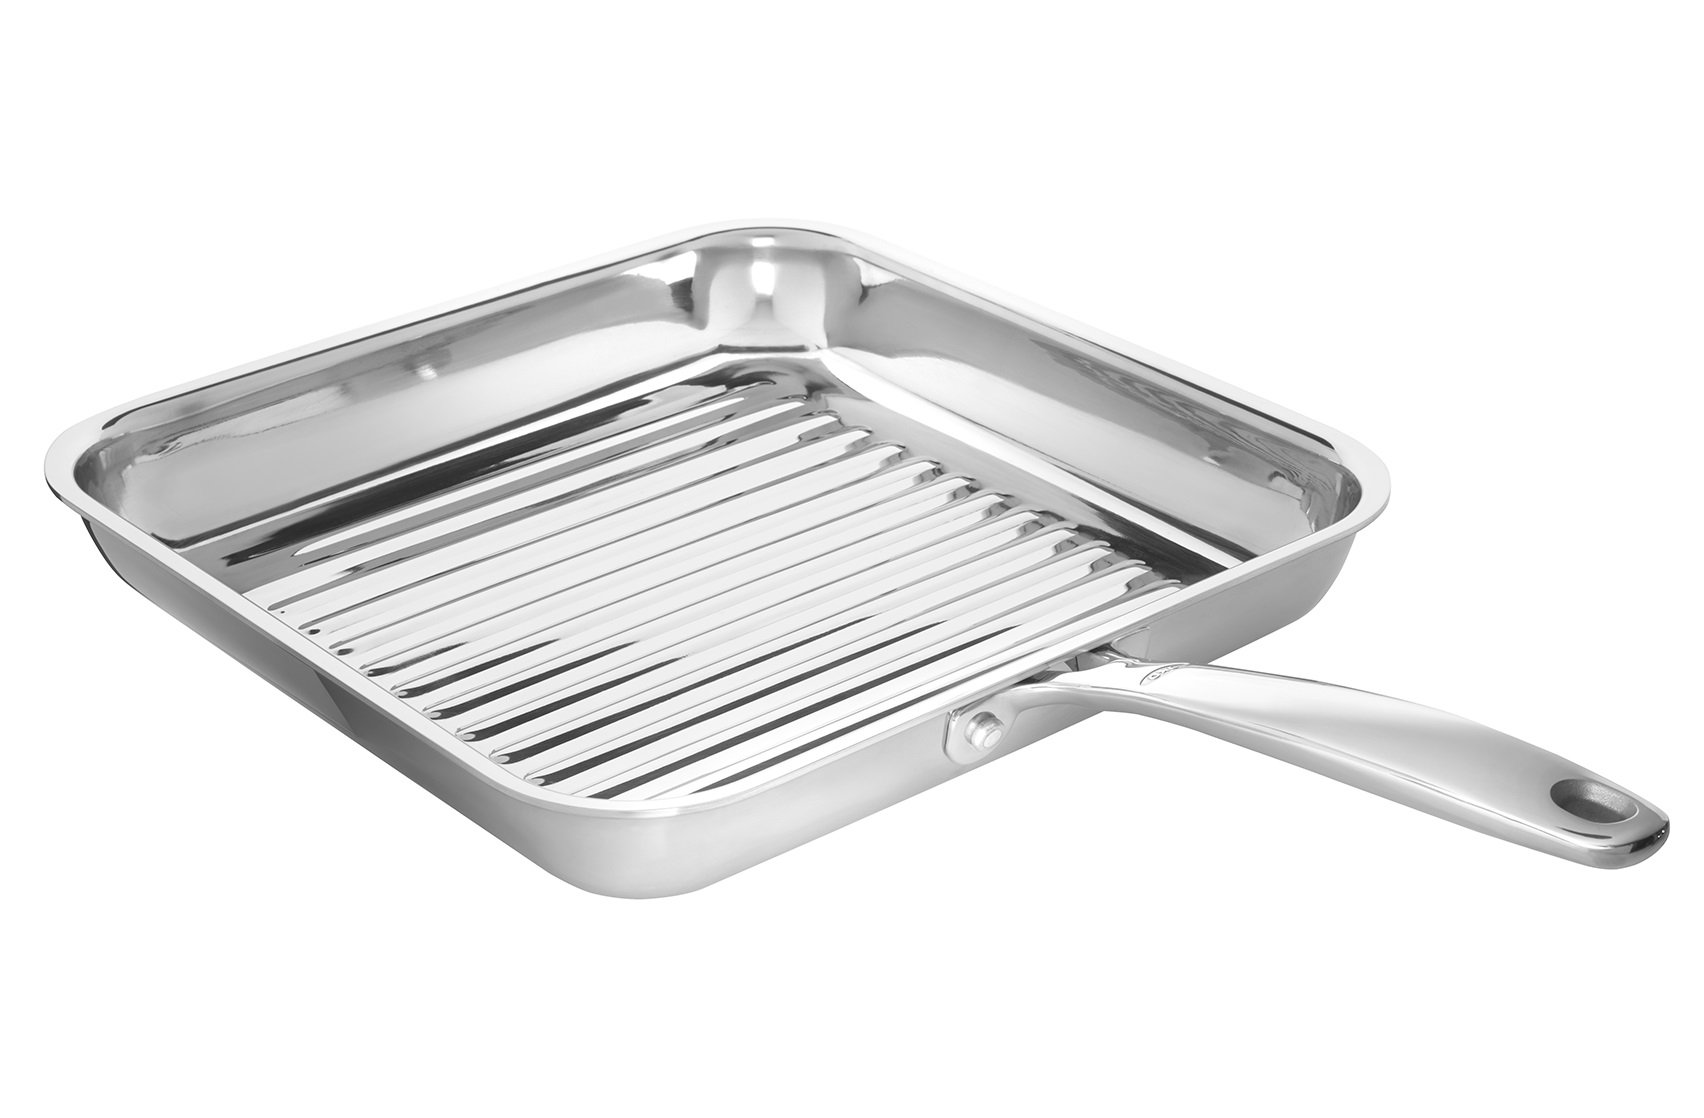 OXO Good Grips Tri-Ply Stainless Steel Pro 11'' Square Grillpan by OXO